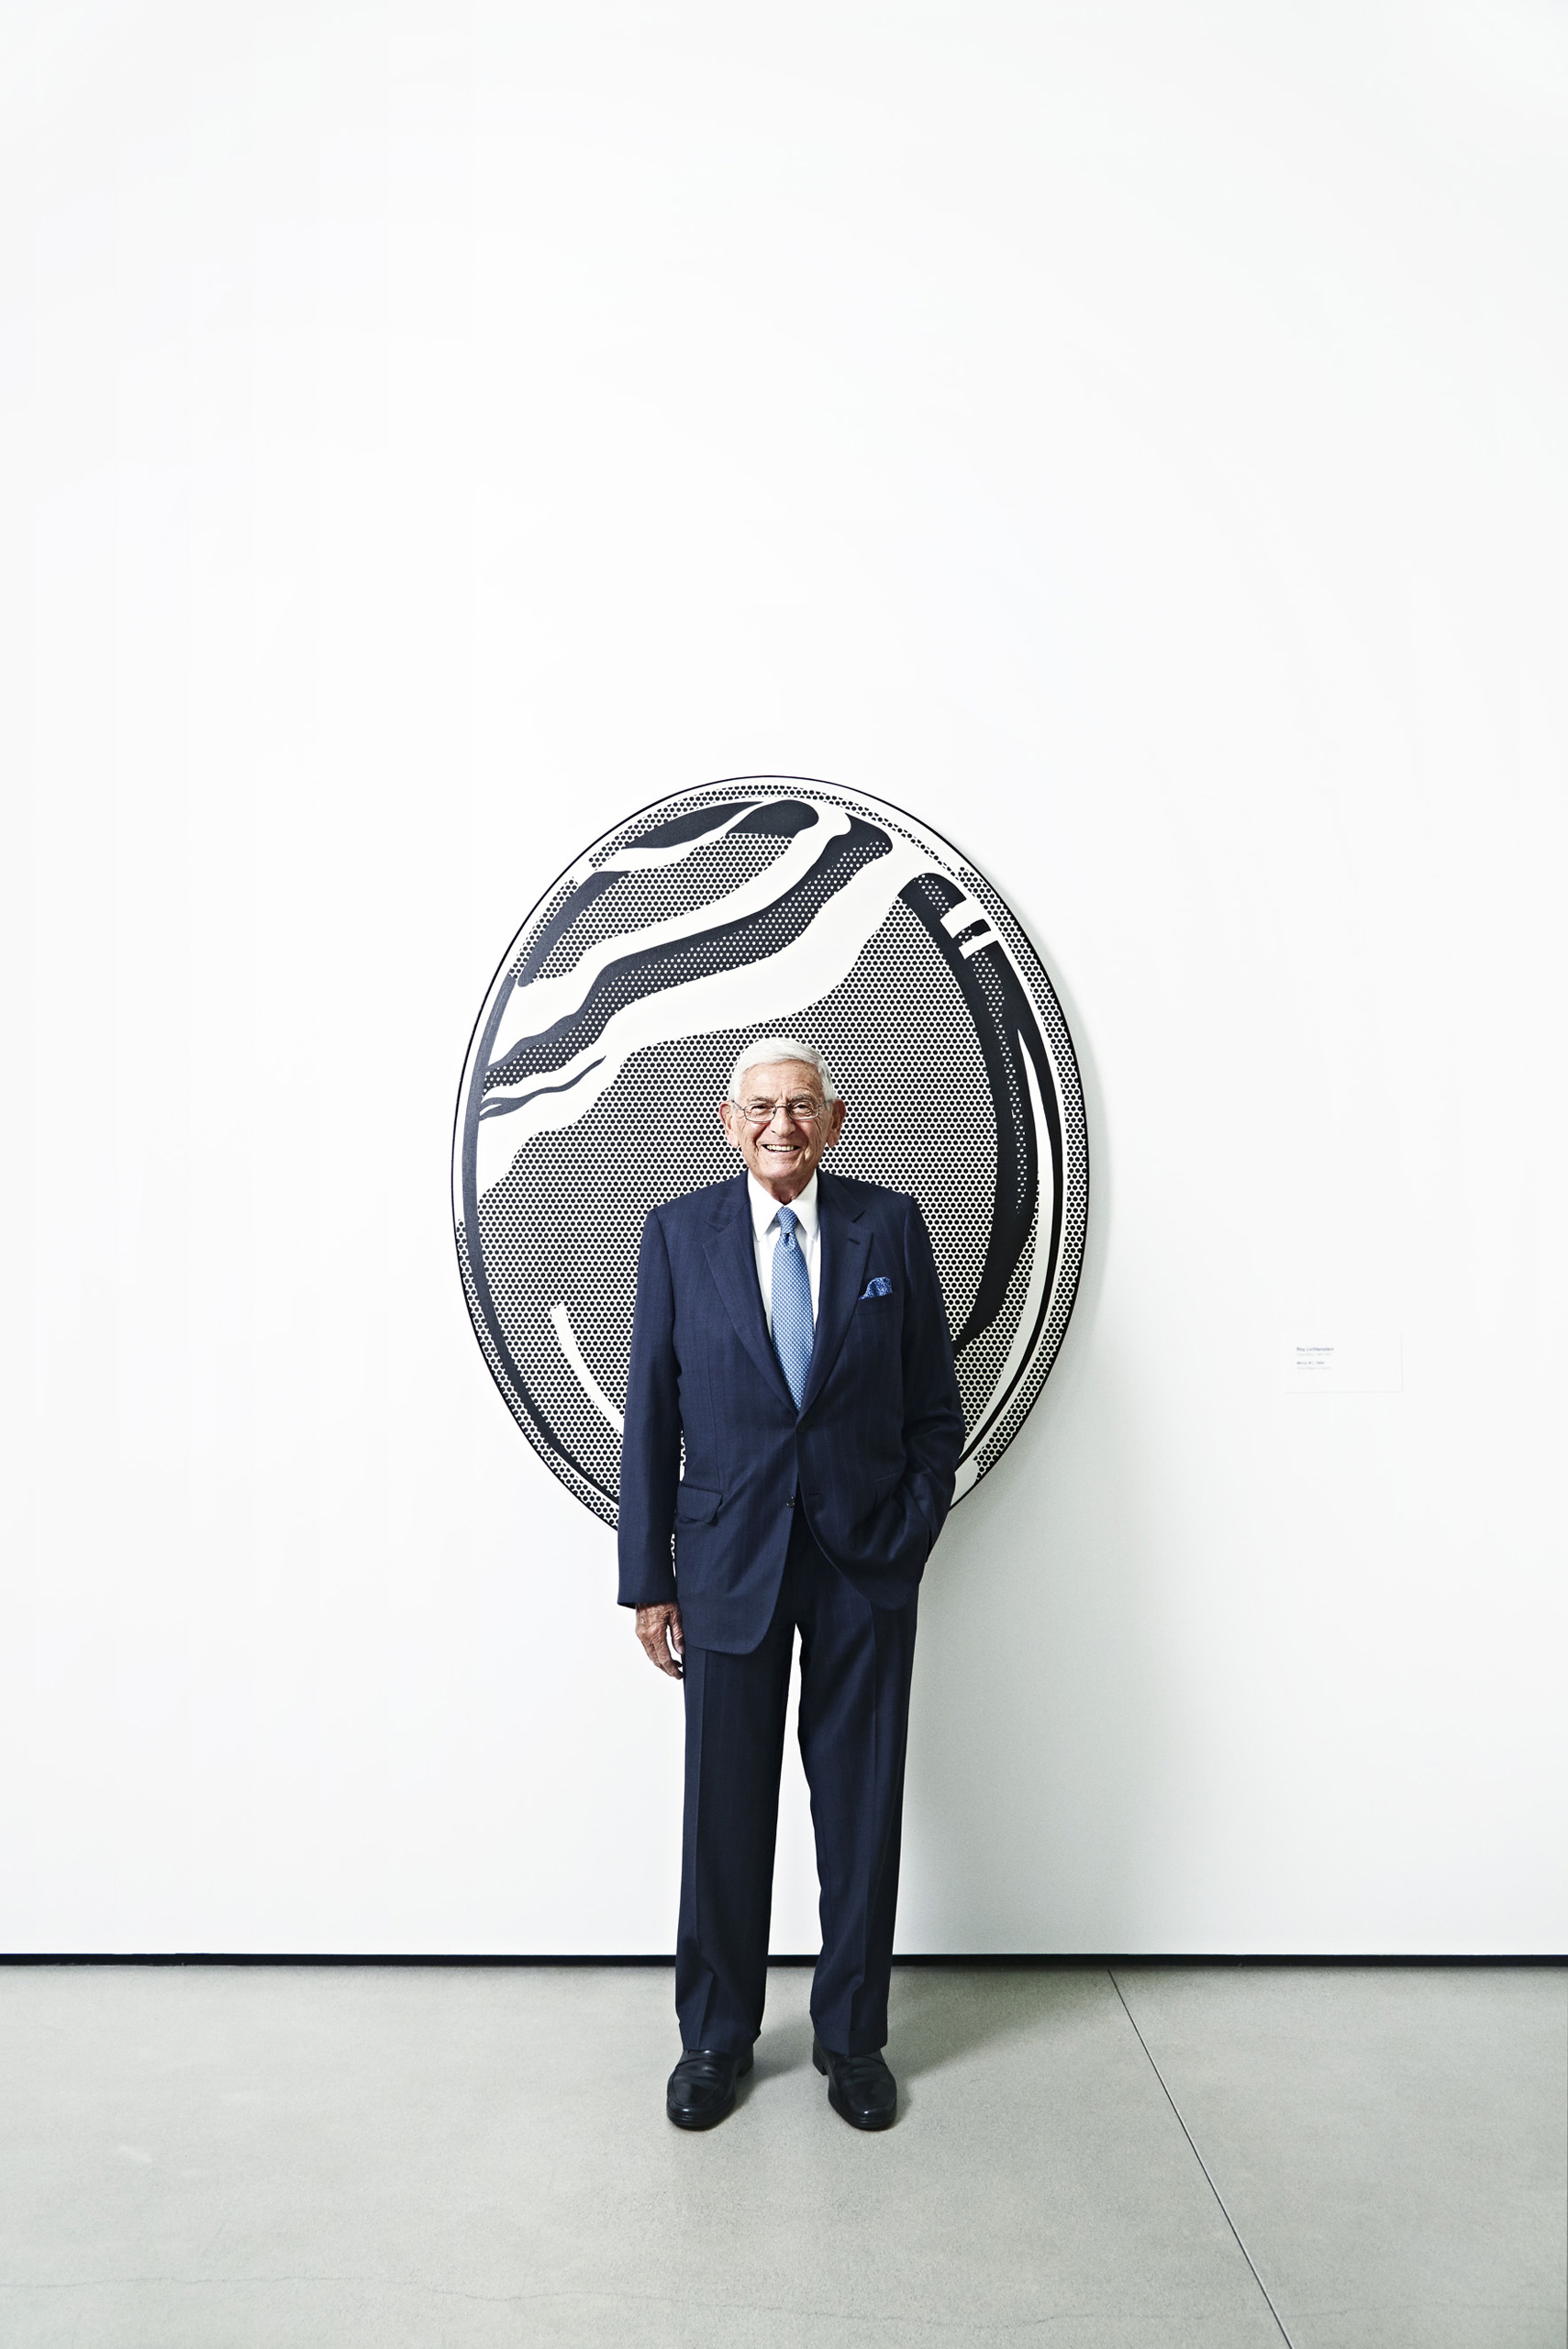 Philanthropist Eli Broad at the new Broad Museum in Los Angeles on Sept. 18th, 2015.